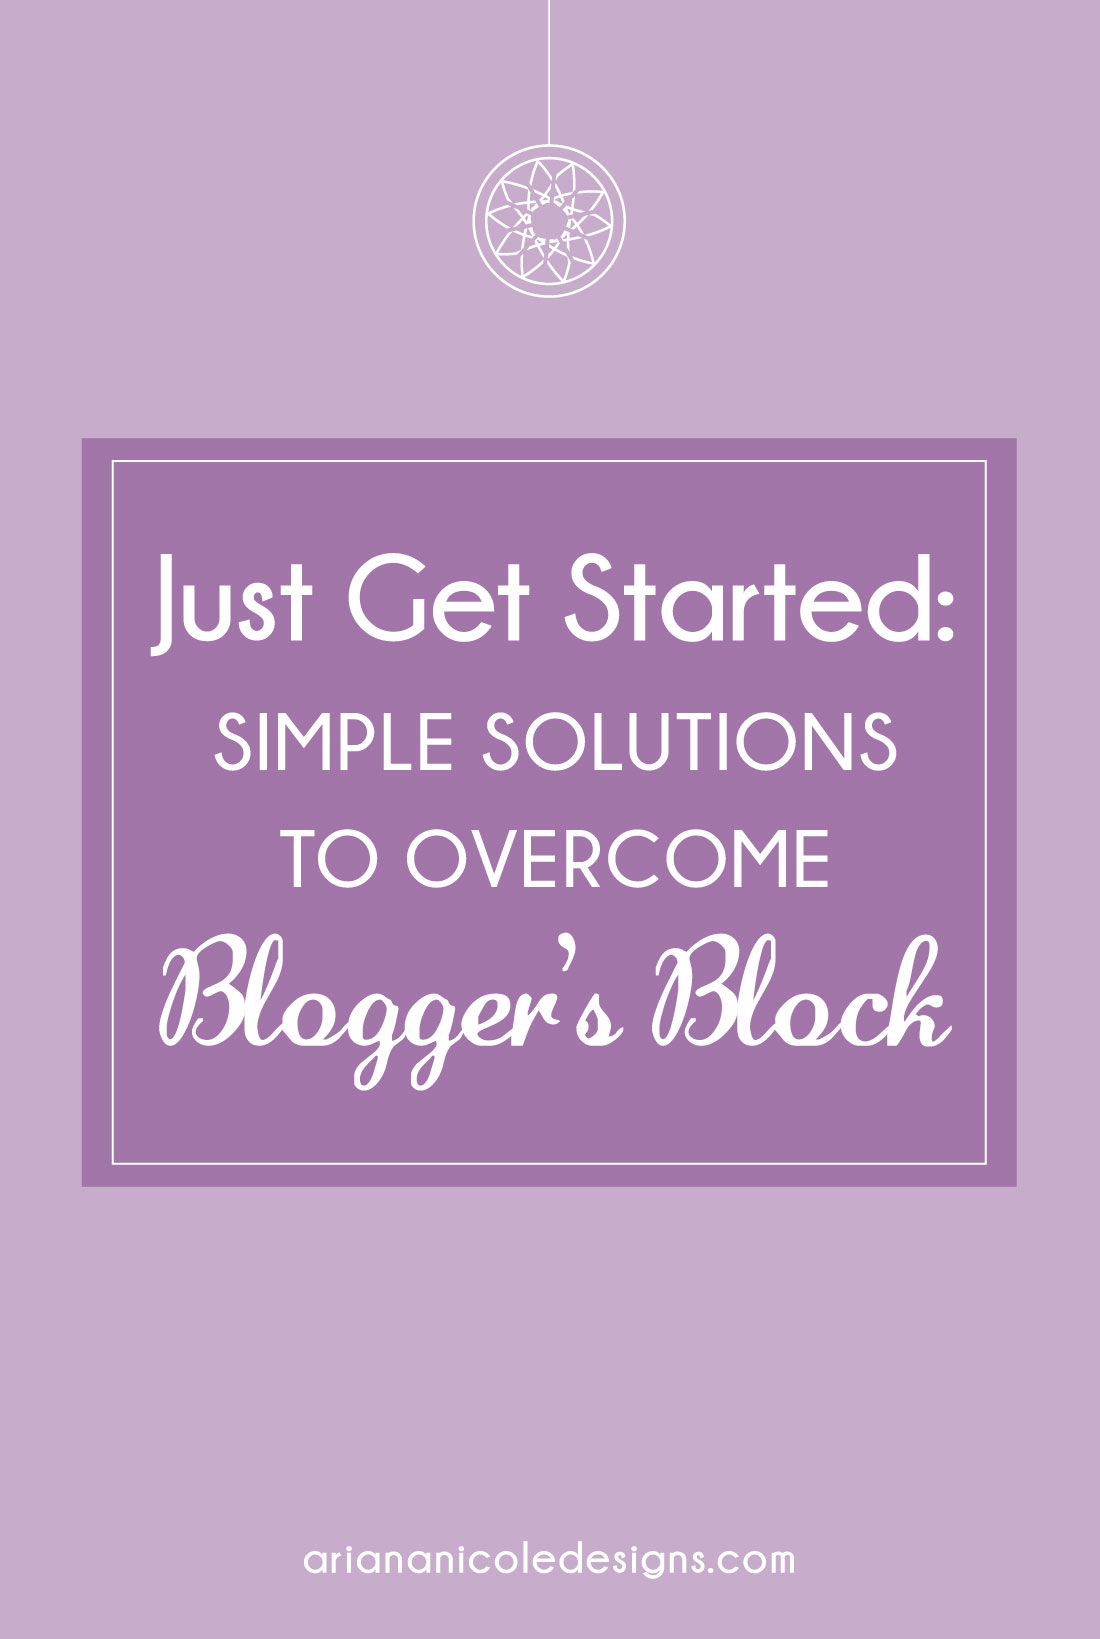 Just_Get_Started_Simple_Soltions_to_Overcome_Bloggers_Block-1100